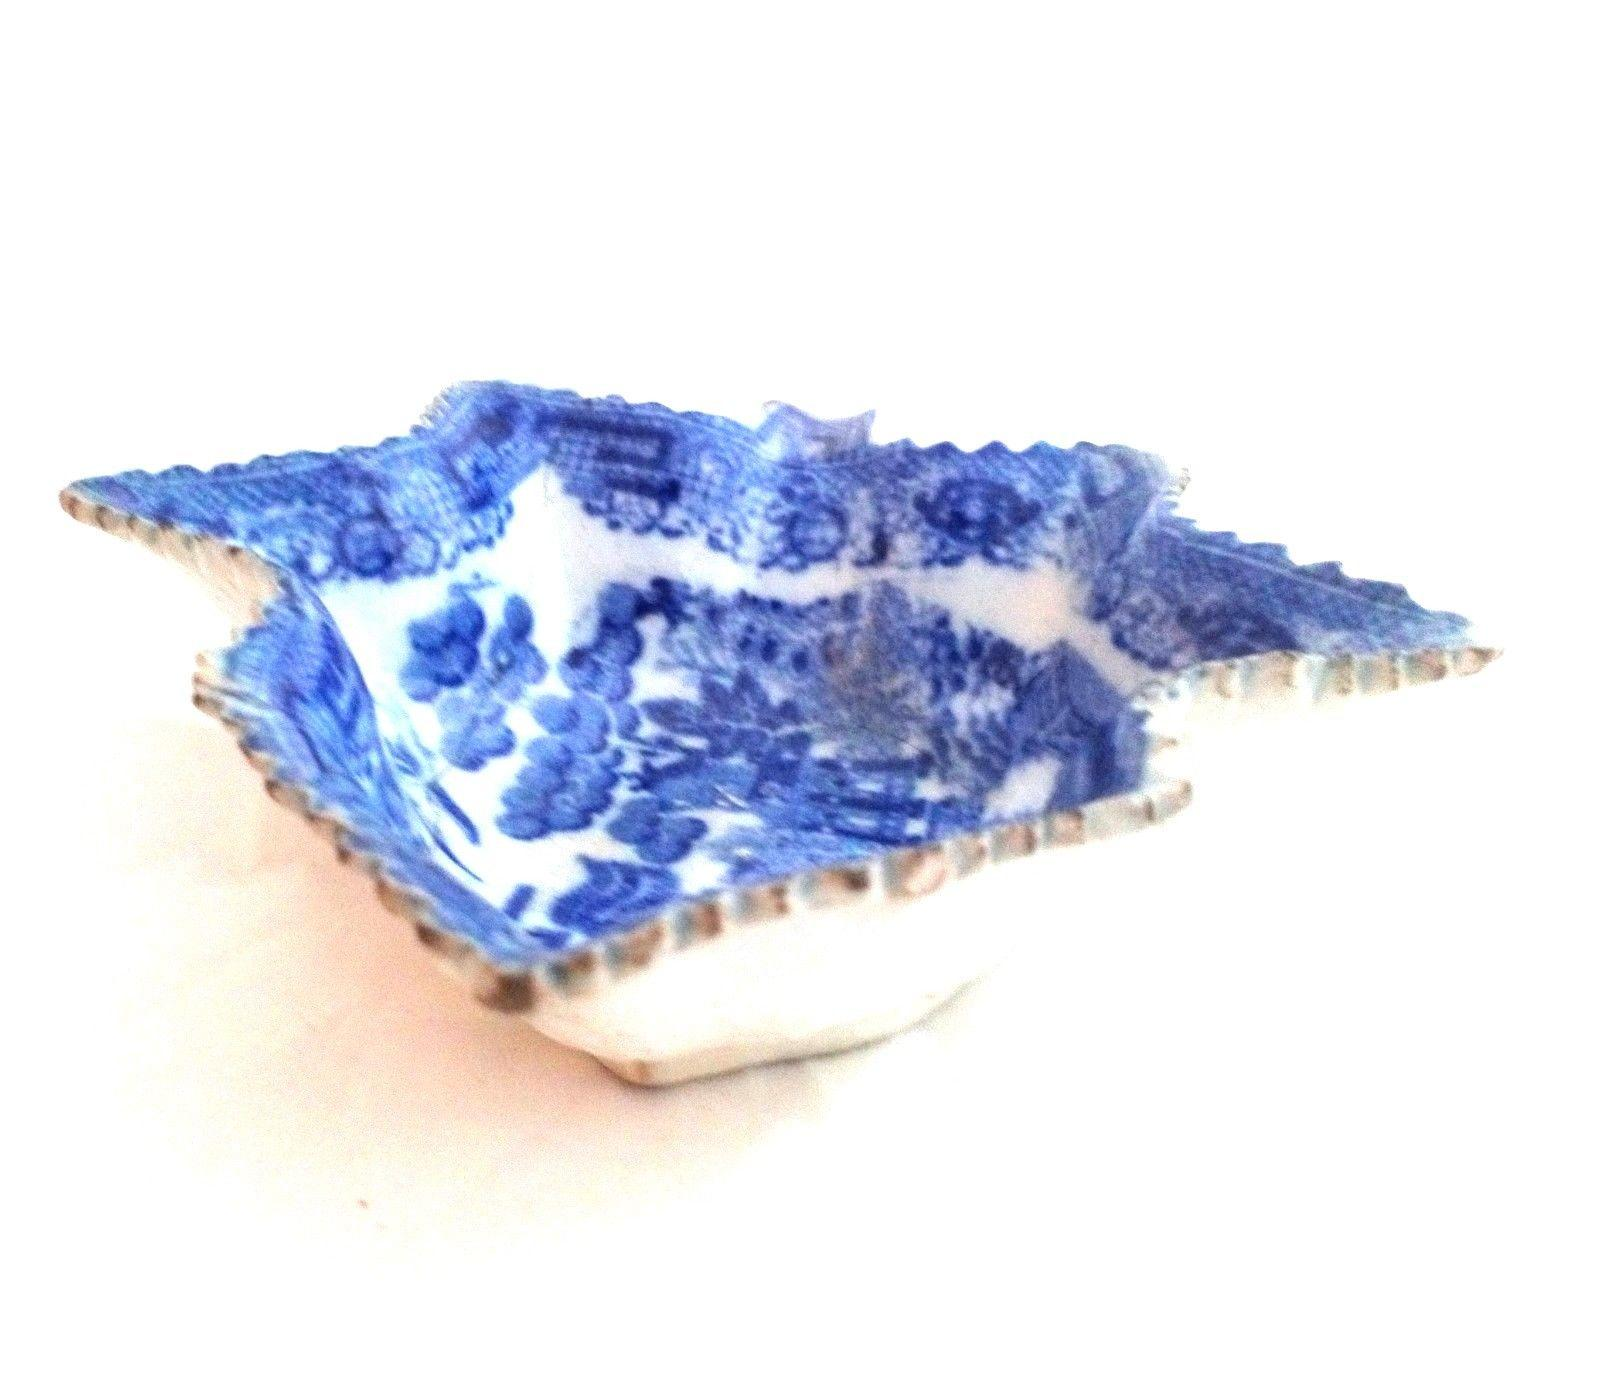 Antique Pearlware Pottery Leaf Shaped Pickle Dish Blue & White Willow c 1800